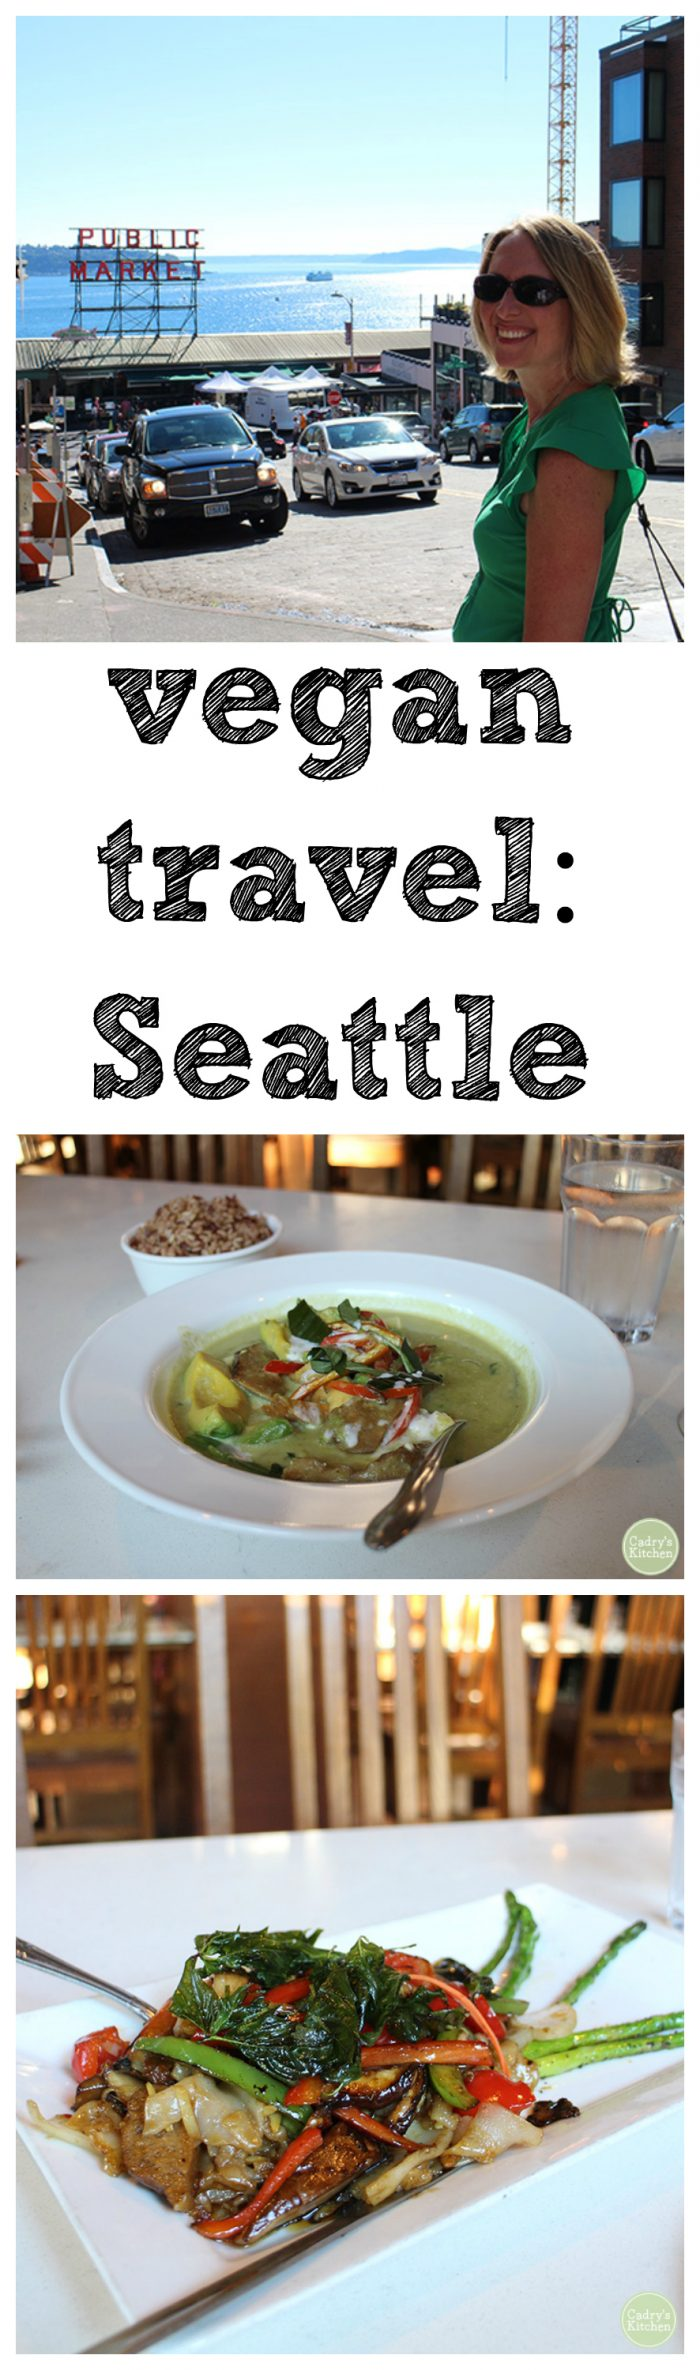 Tips on where to go in Seattle. Don't miss Vegan Haven, Araya's Place, Olympic Sculpture Park, and the best view of the Space Needle at Kerry Park. #vegan #travel #seattle #washington